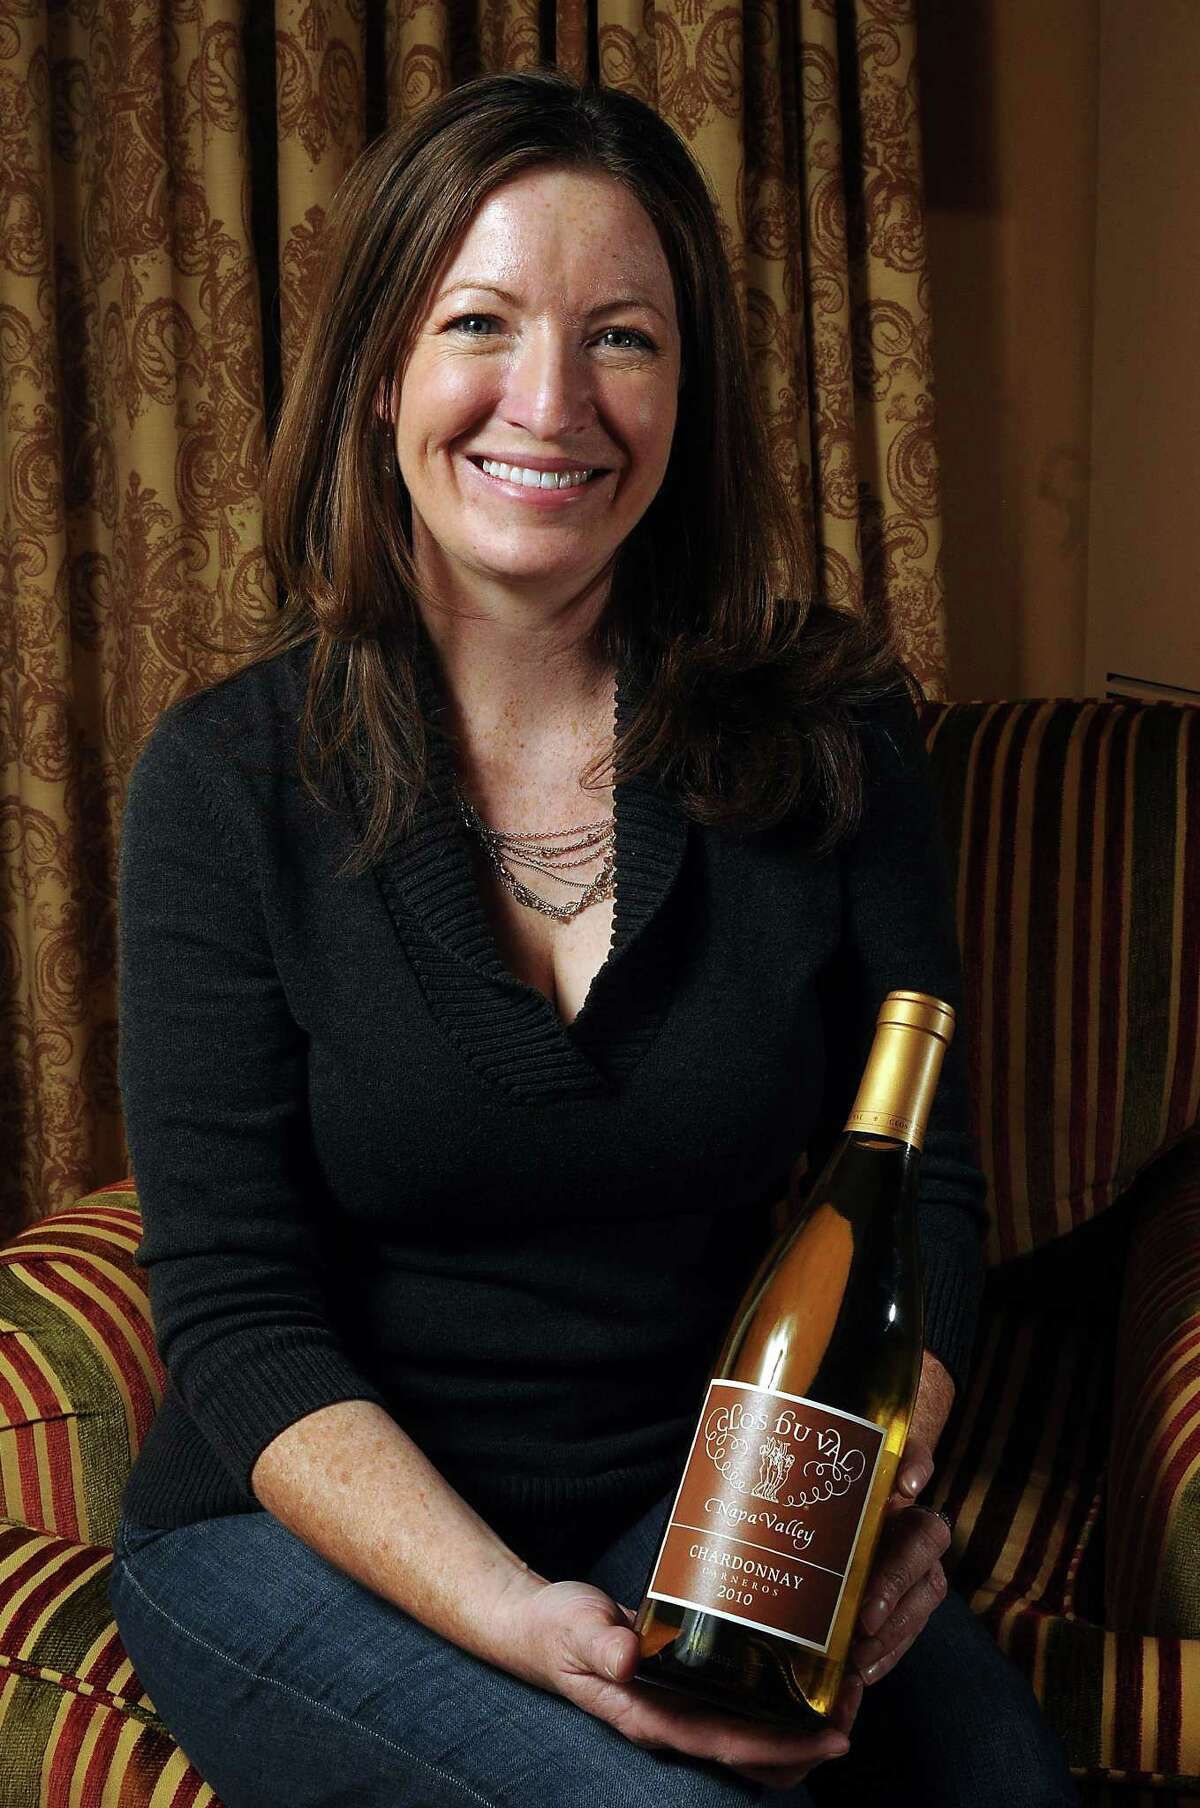 Kristy Melton's 2010 Clos du Val Chardonnay has won a double-gold medal at the rodeo.